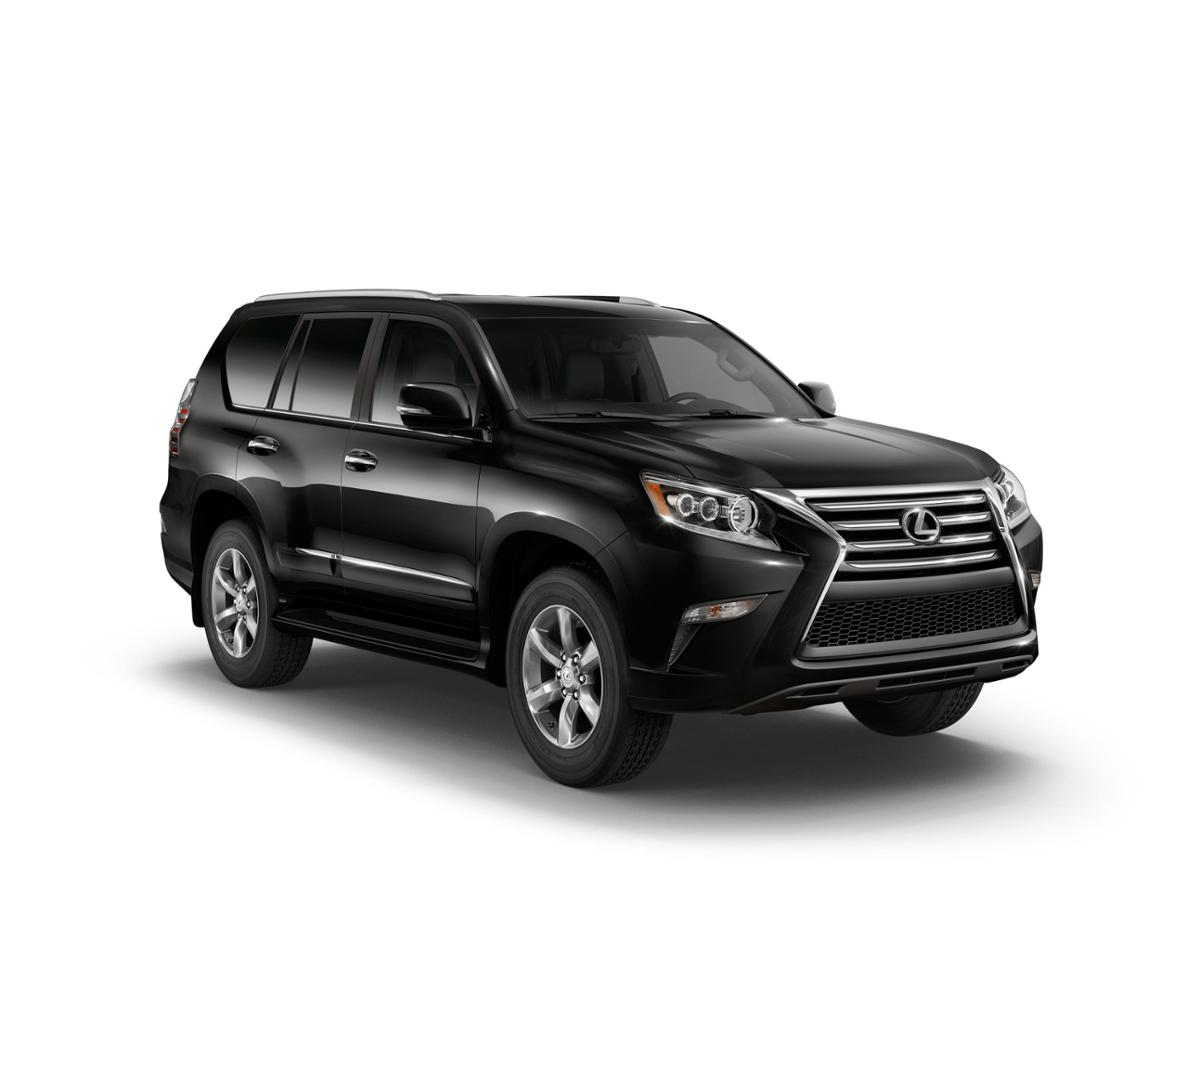 2019 Lexus GX 460 Vehicle Photo in Fort Worth, TX 76132